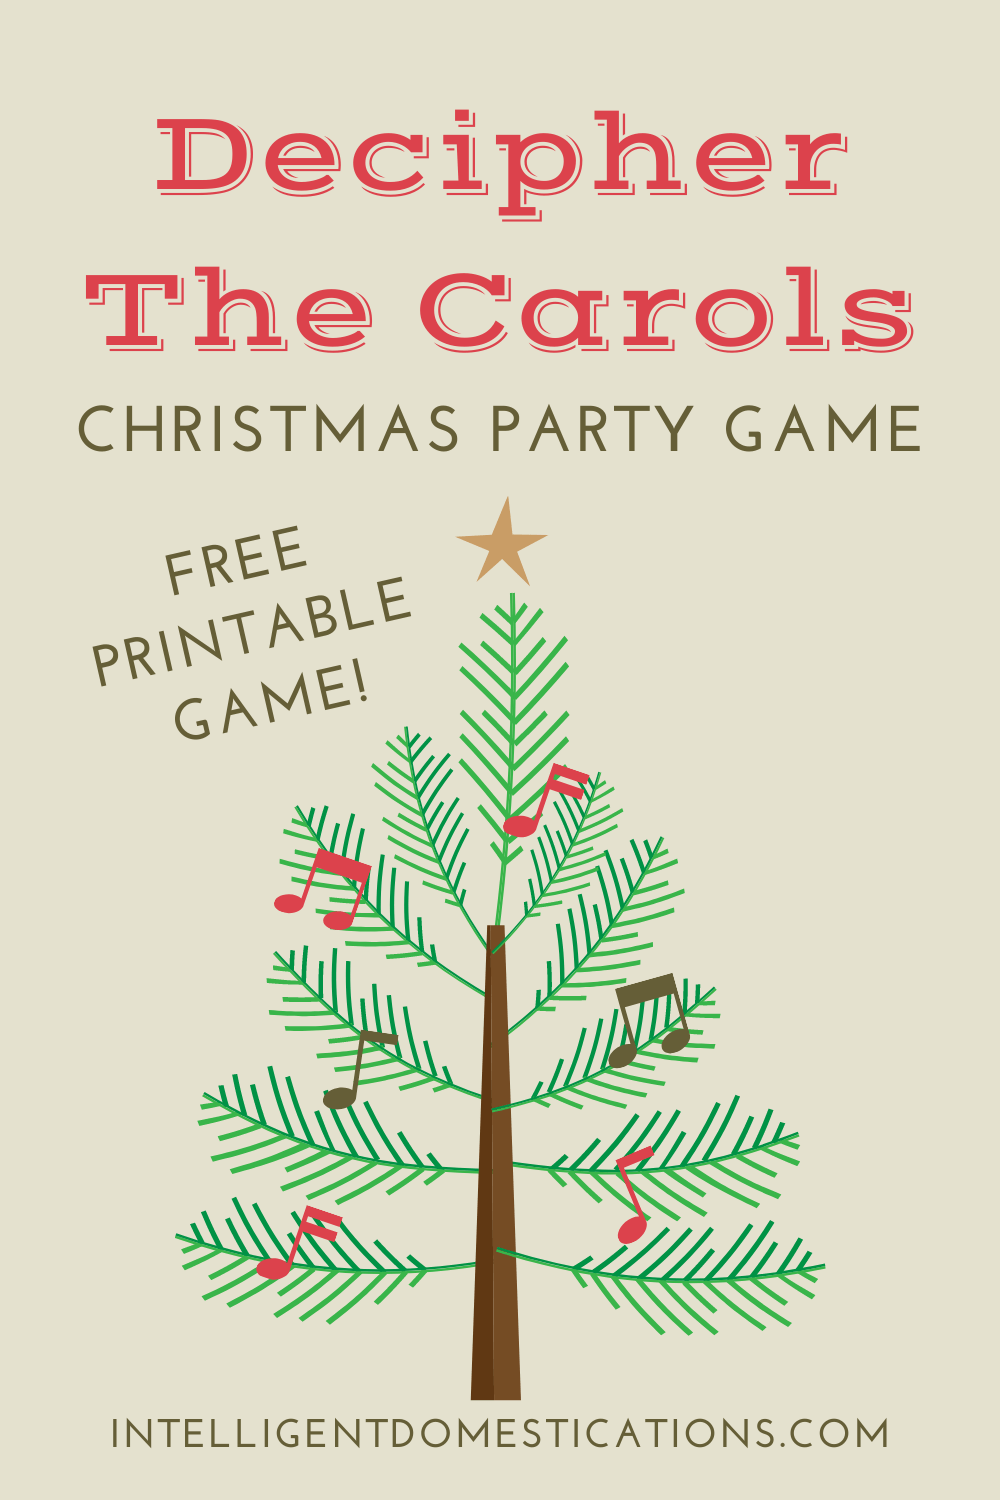 Decipher The Carols Christmas Party Game using pen and paper